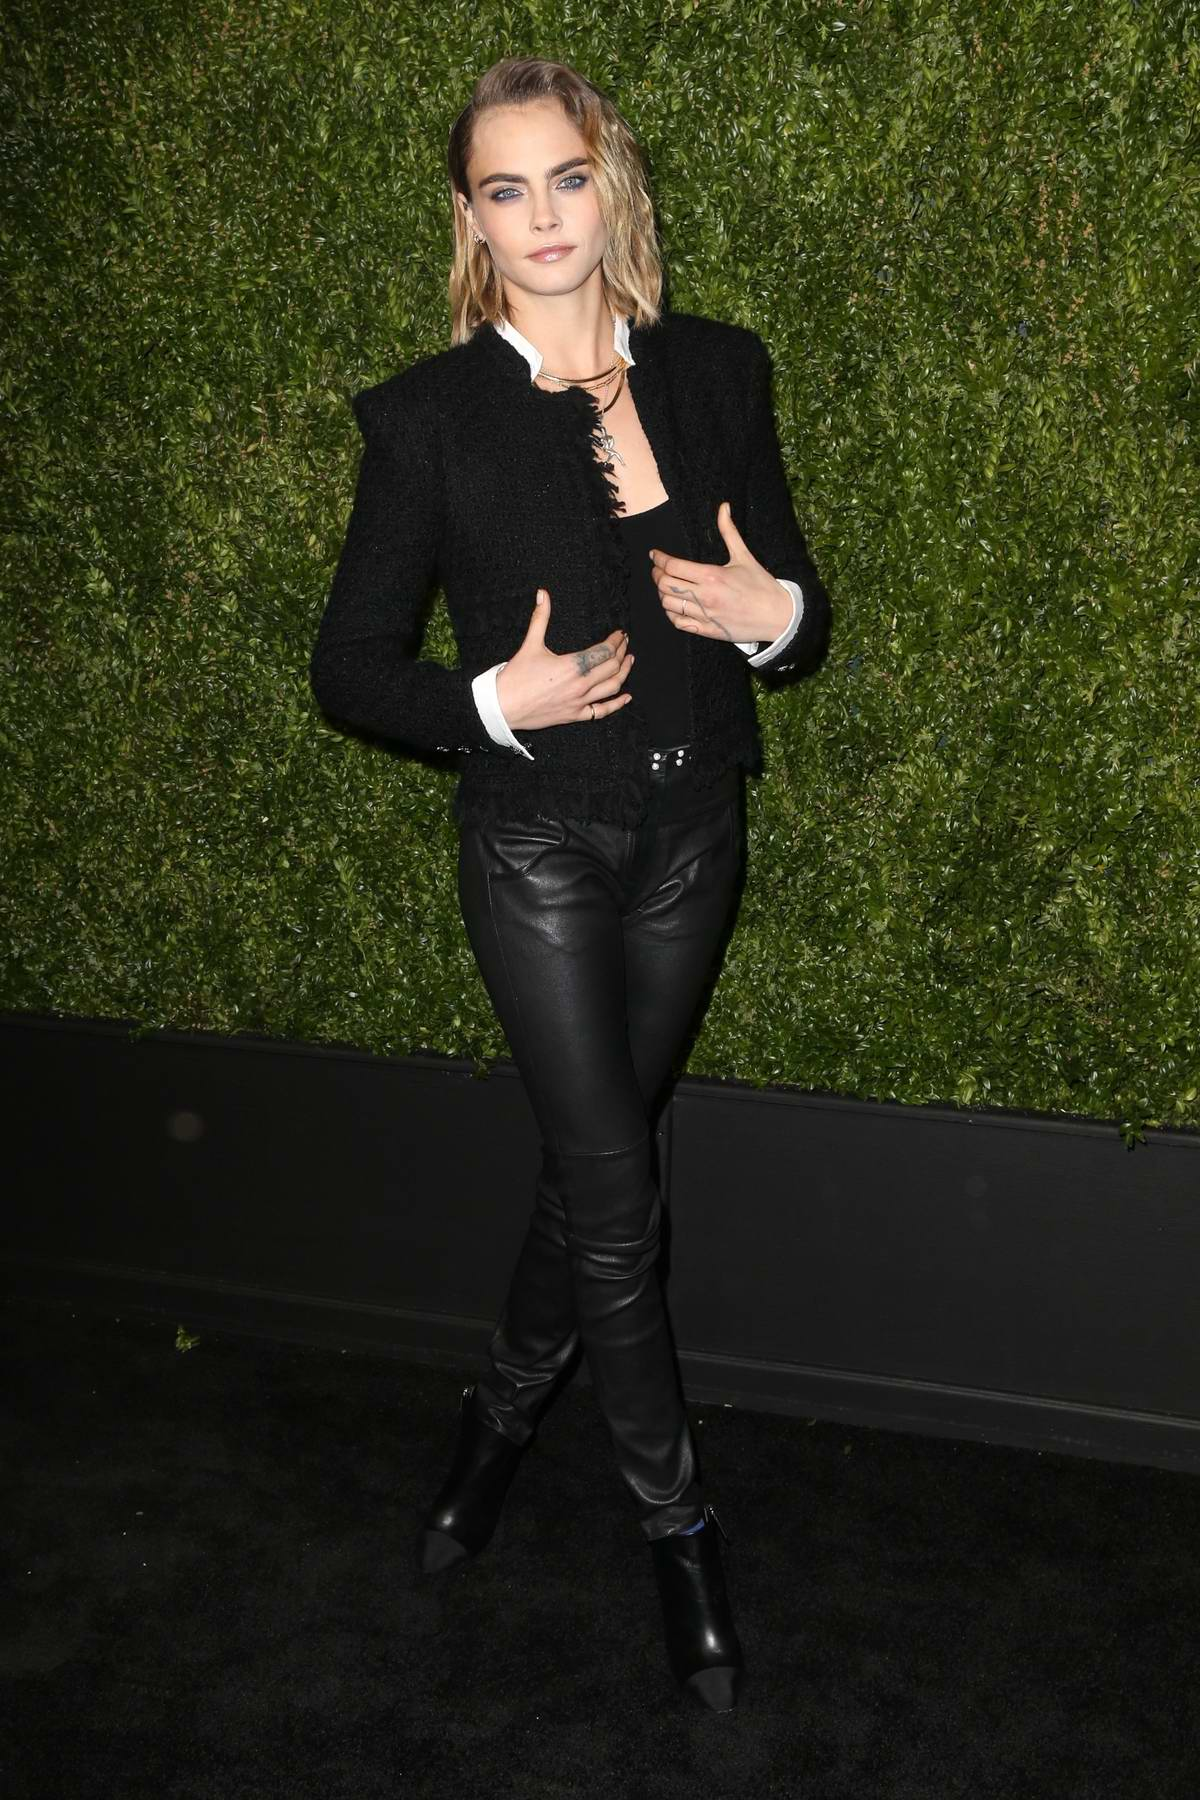 Cara Delevingne attends the 14th Annual Tribeca Film Festival Artists Dinner hosted by Chanel in New York City